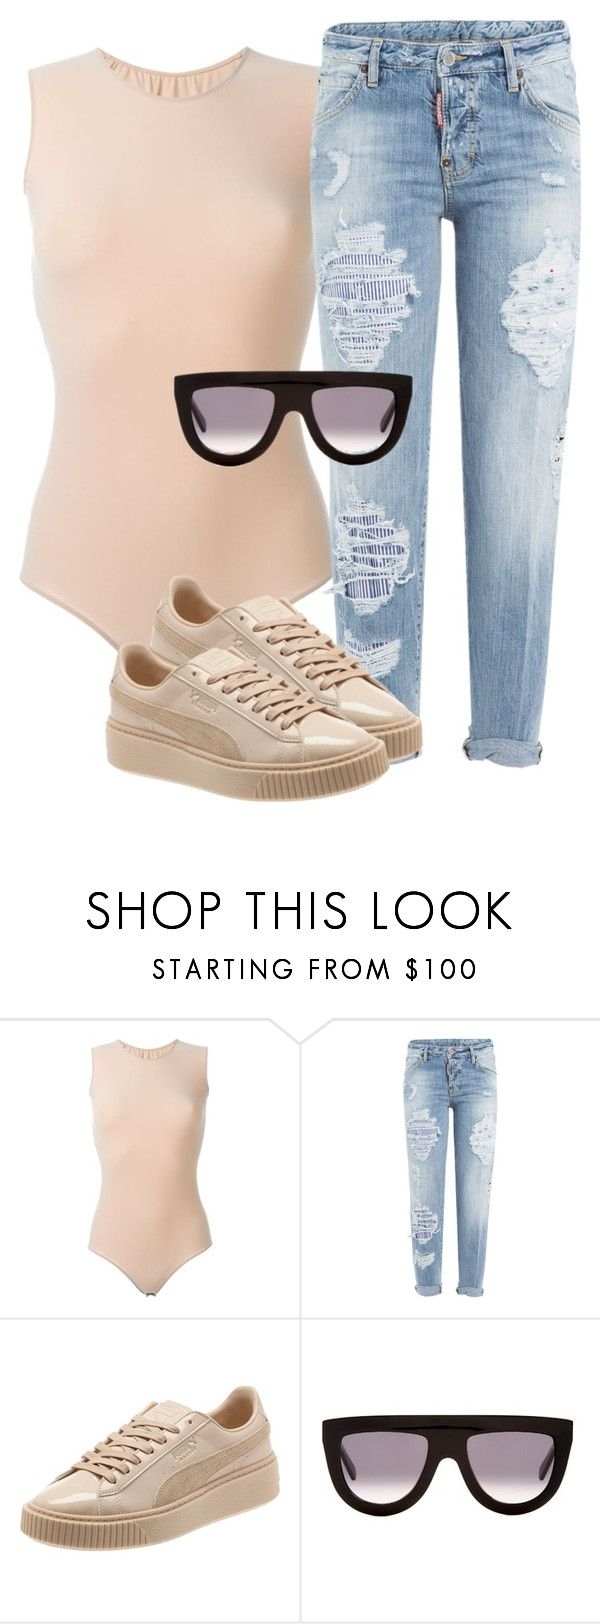 """Untitled #790"" by antonela-475 ❤ liked on Polyvore featuring Maison Margiela, Dsquared2, Puma and CÉLINE"